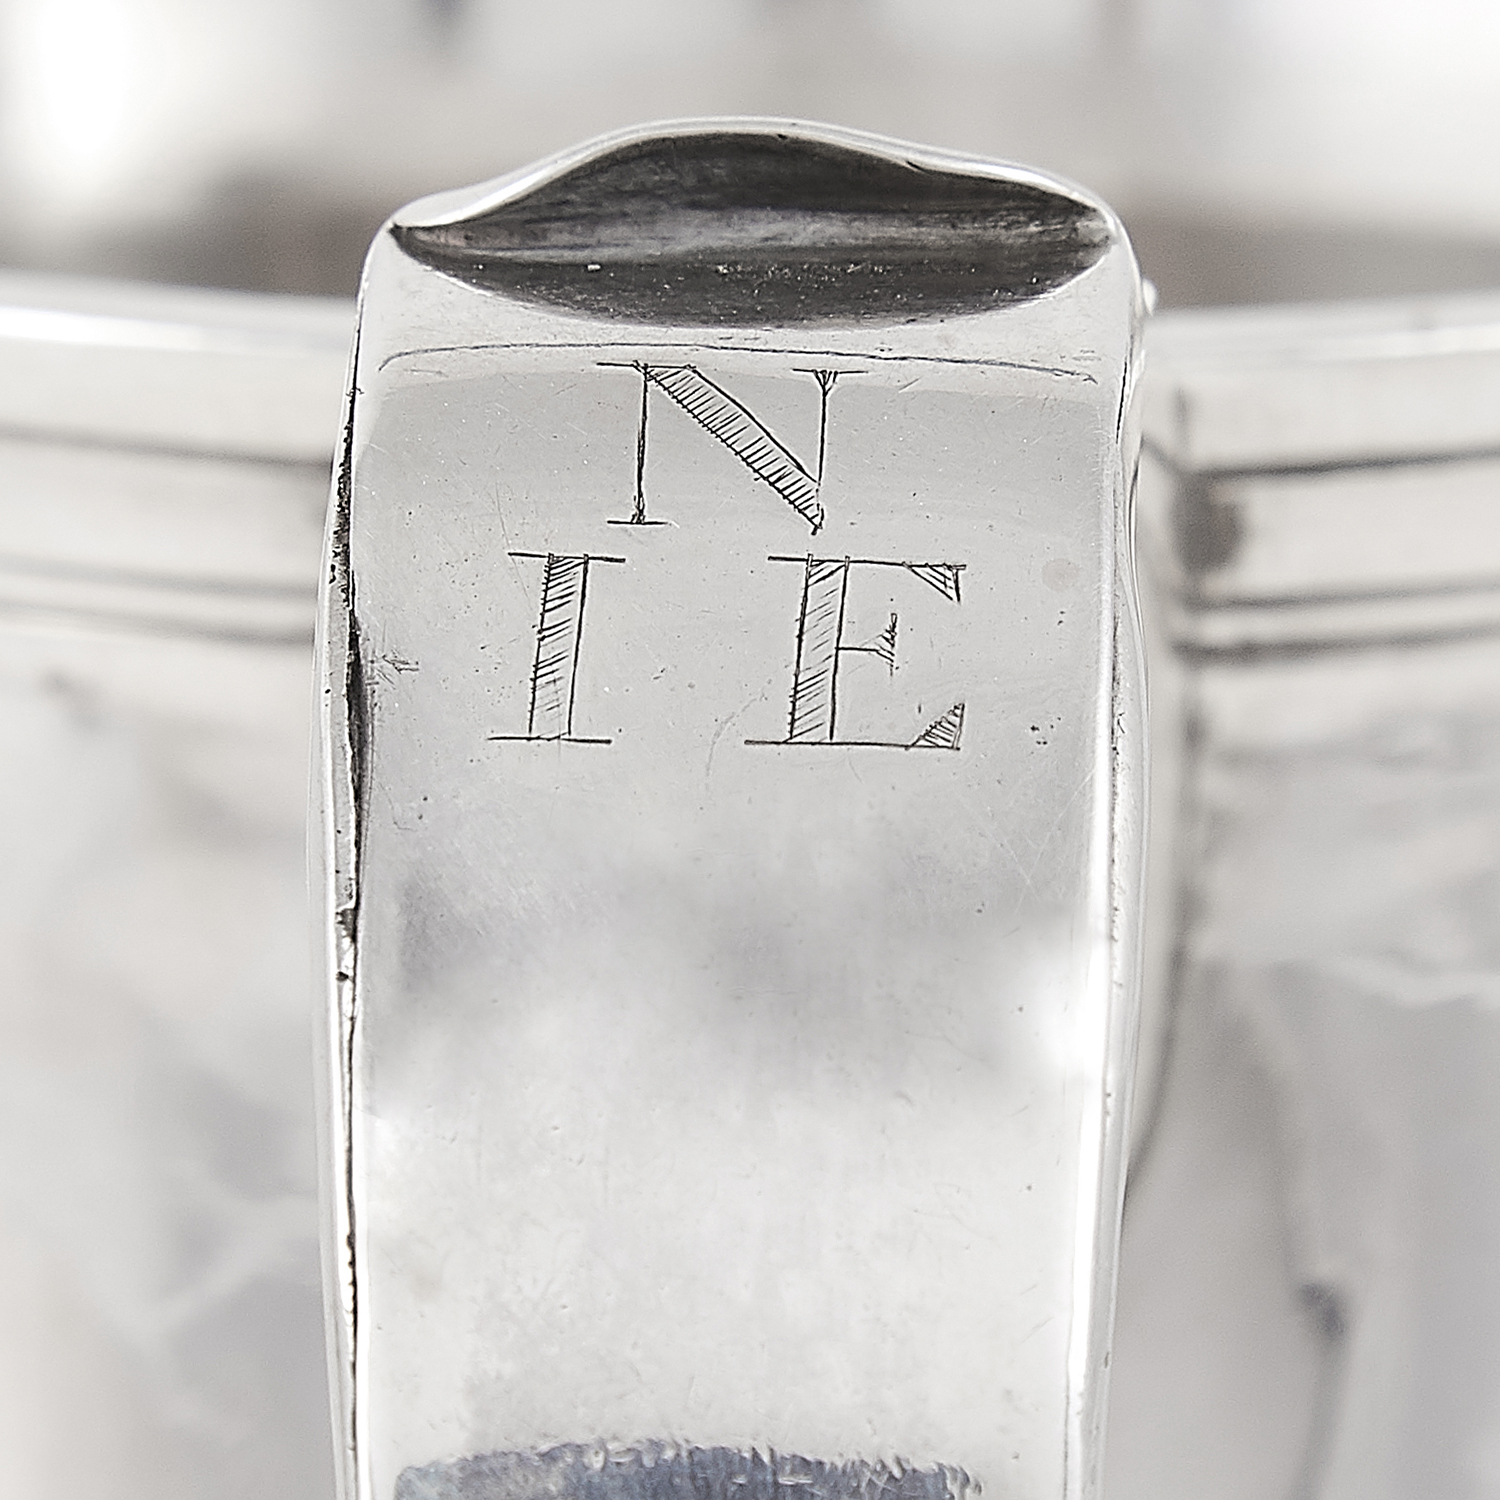 Los 7 - ANTIQUE GEORGE III STERLING SILVER PINT MUG, JOHN LANGLANDS, NEWCASTLE 1769 the tapering body on a